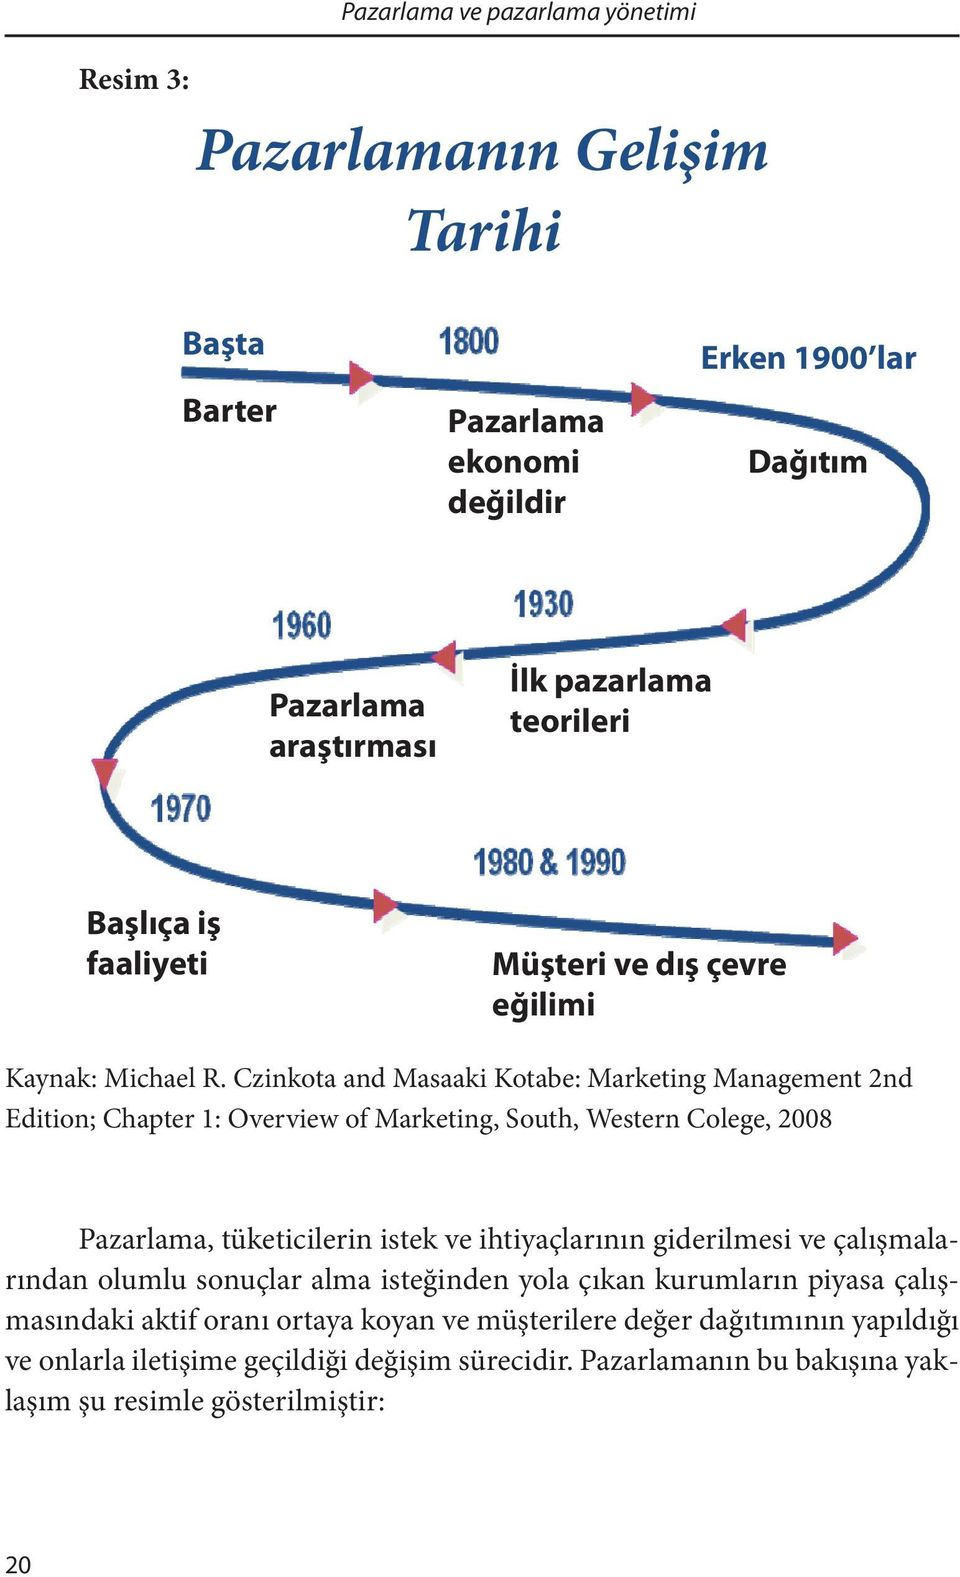 Czinkota and Masaaki Kotabe: Marketing Management 2nd Edition; Chapter 1: Overview of Marketing, South, Western Colege, 2008 Pazarlama, tüketicilerin istek ve